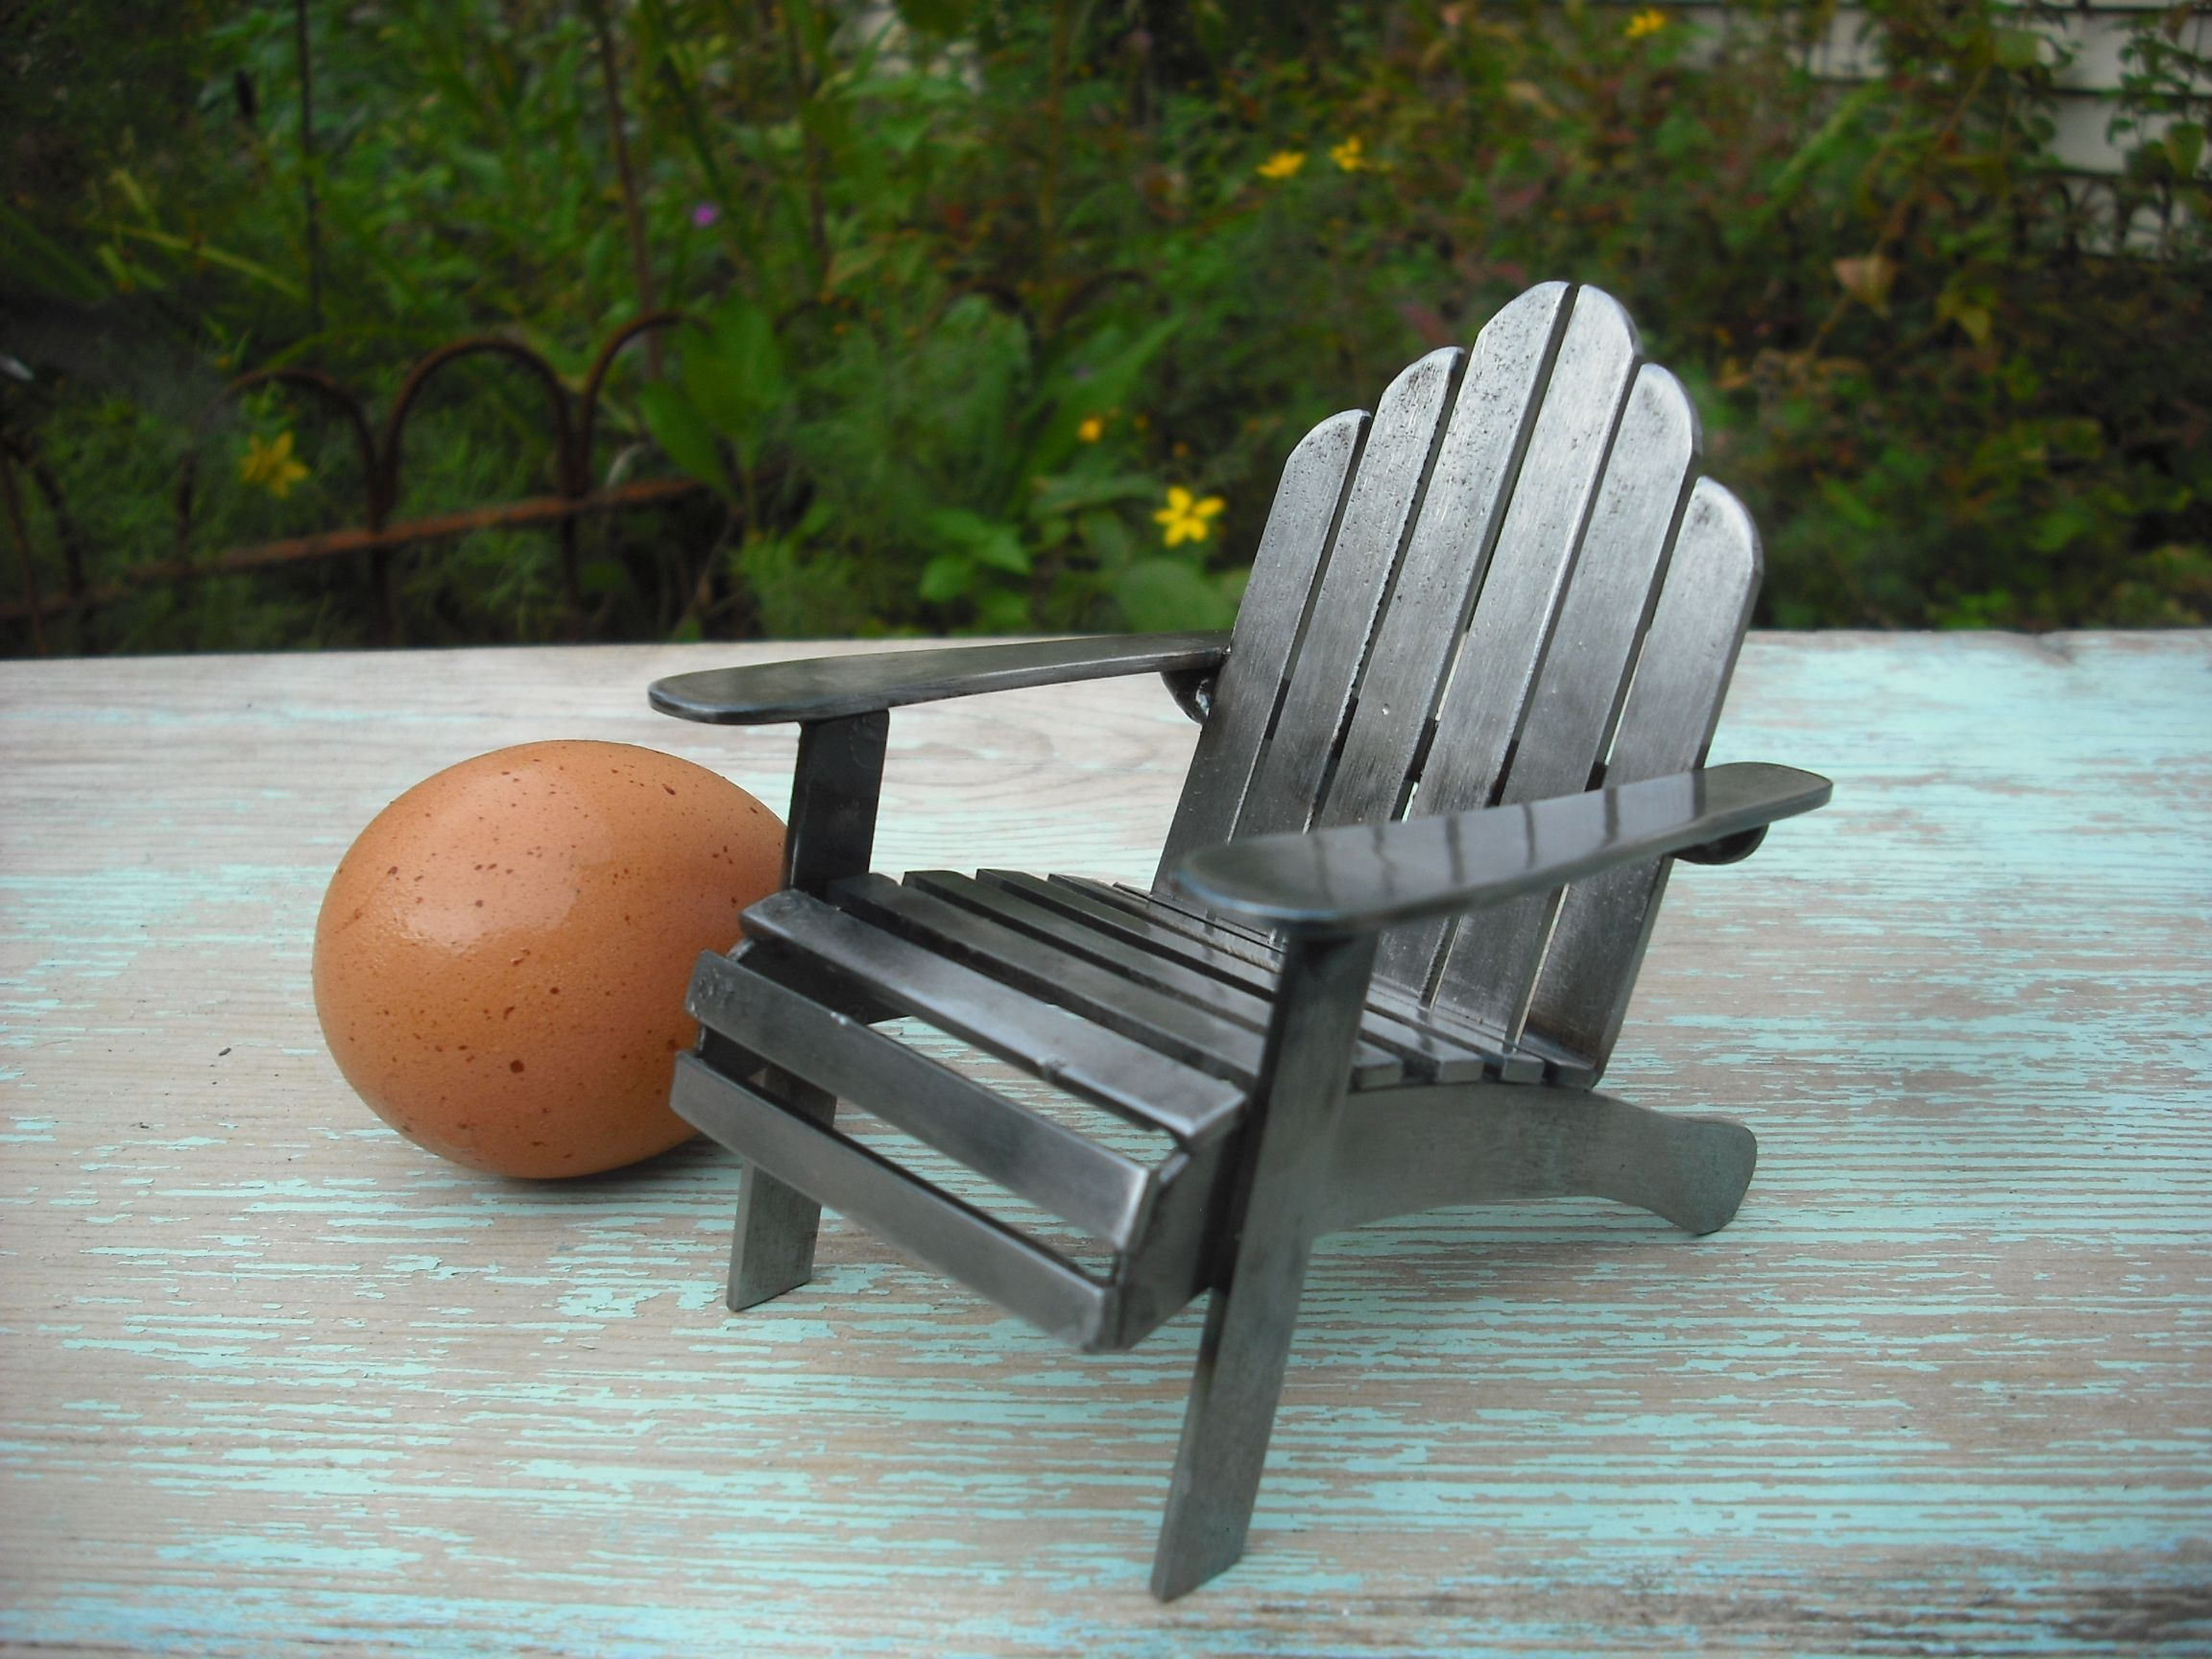 metal adirondack chairs chair exercises on cable tv little welded art pinterest